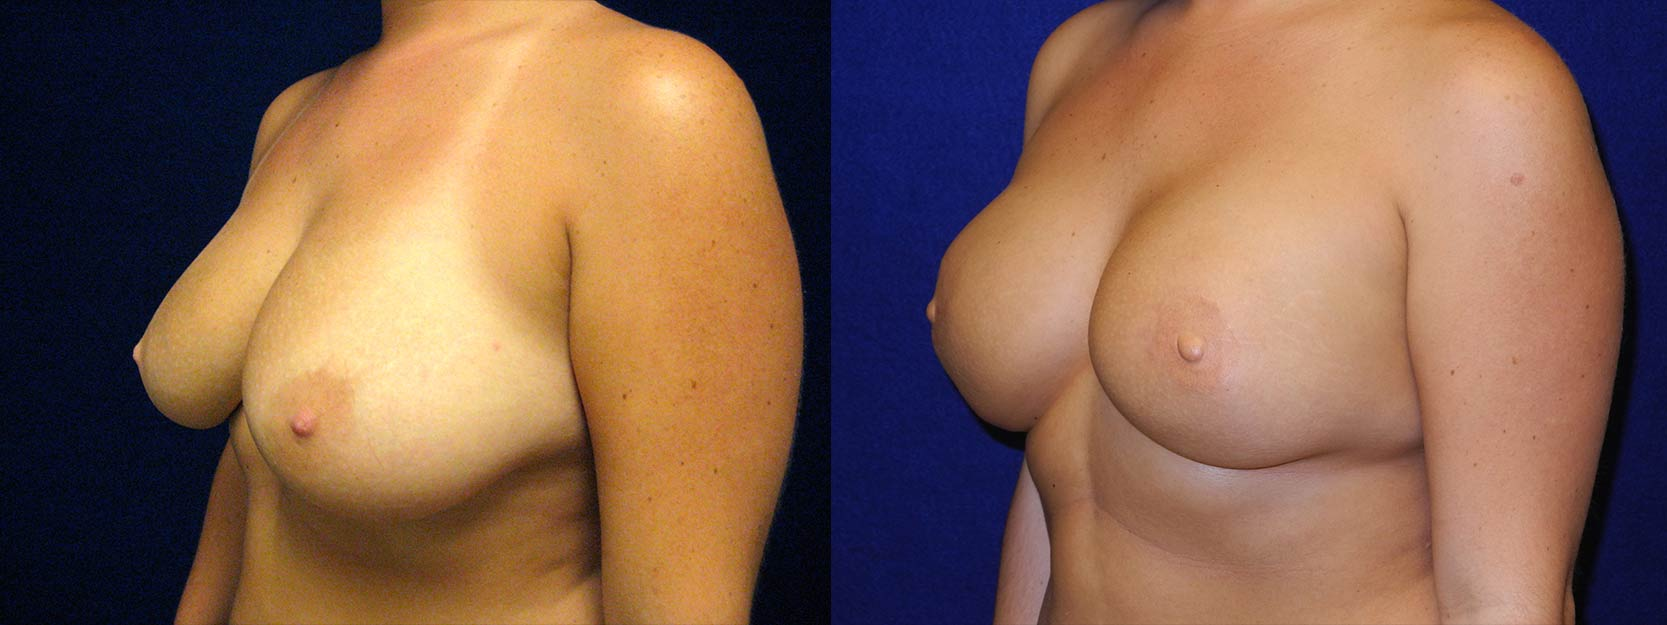 Left 3/4 View - Breast Reconstruction